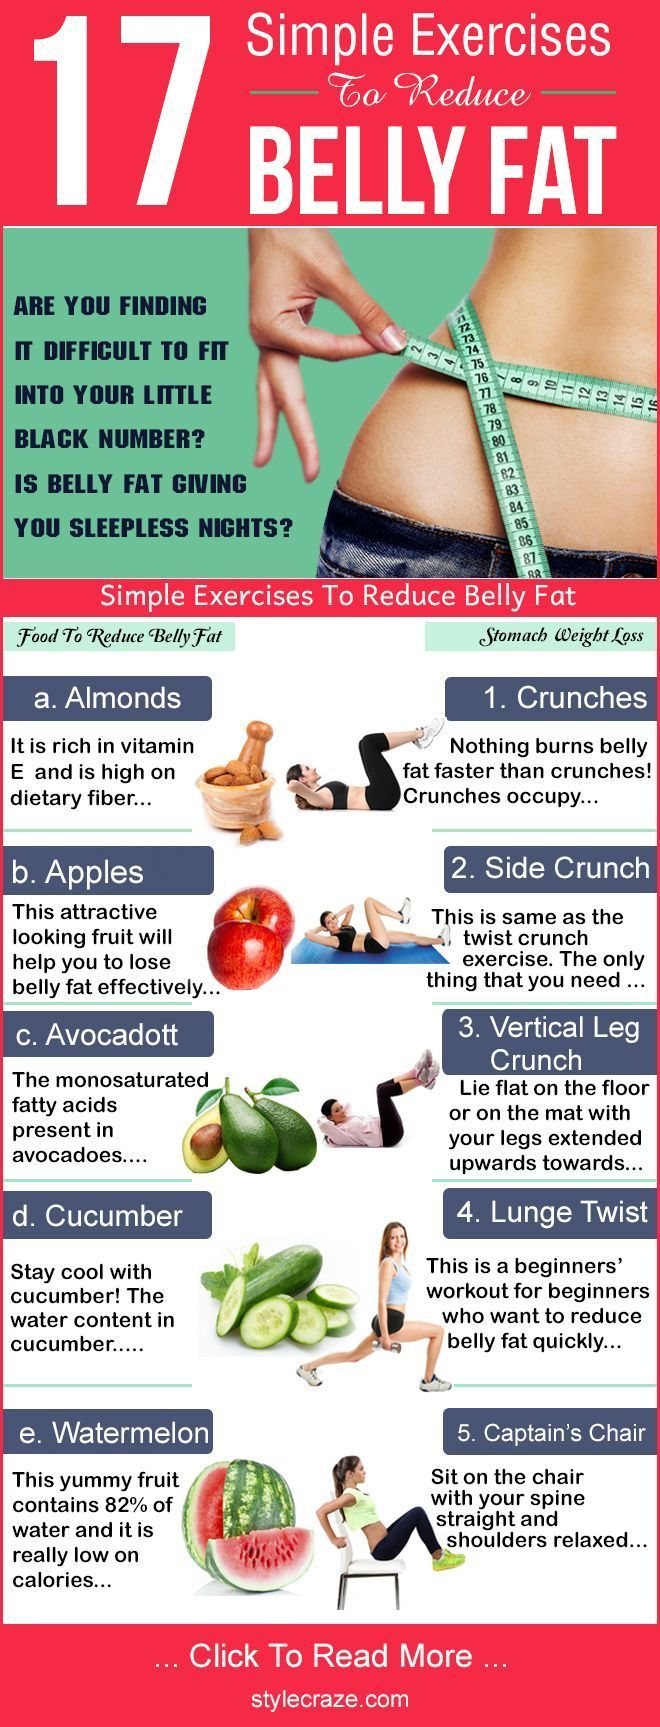 See more here ► https://www.youtube.com/watch?v=t6ic0NKYUMU Tags: how to loss belly fat, how to lose belly fat fast without dieting - Including exercises to reduce belly fat for women helps the best. Here is how to lose stomach fat with these simple exercises. #WeightLoss